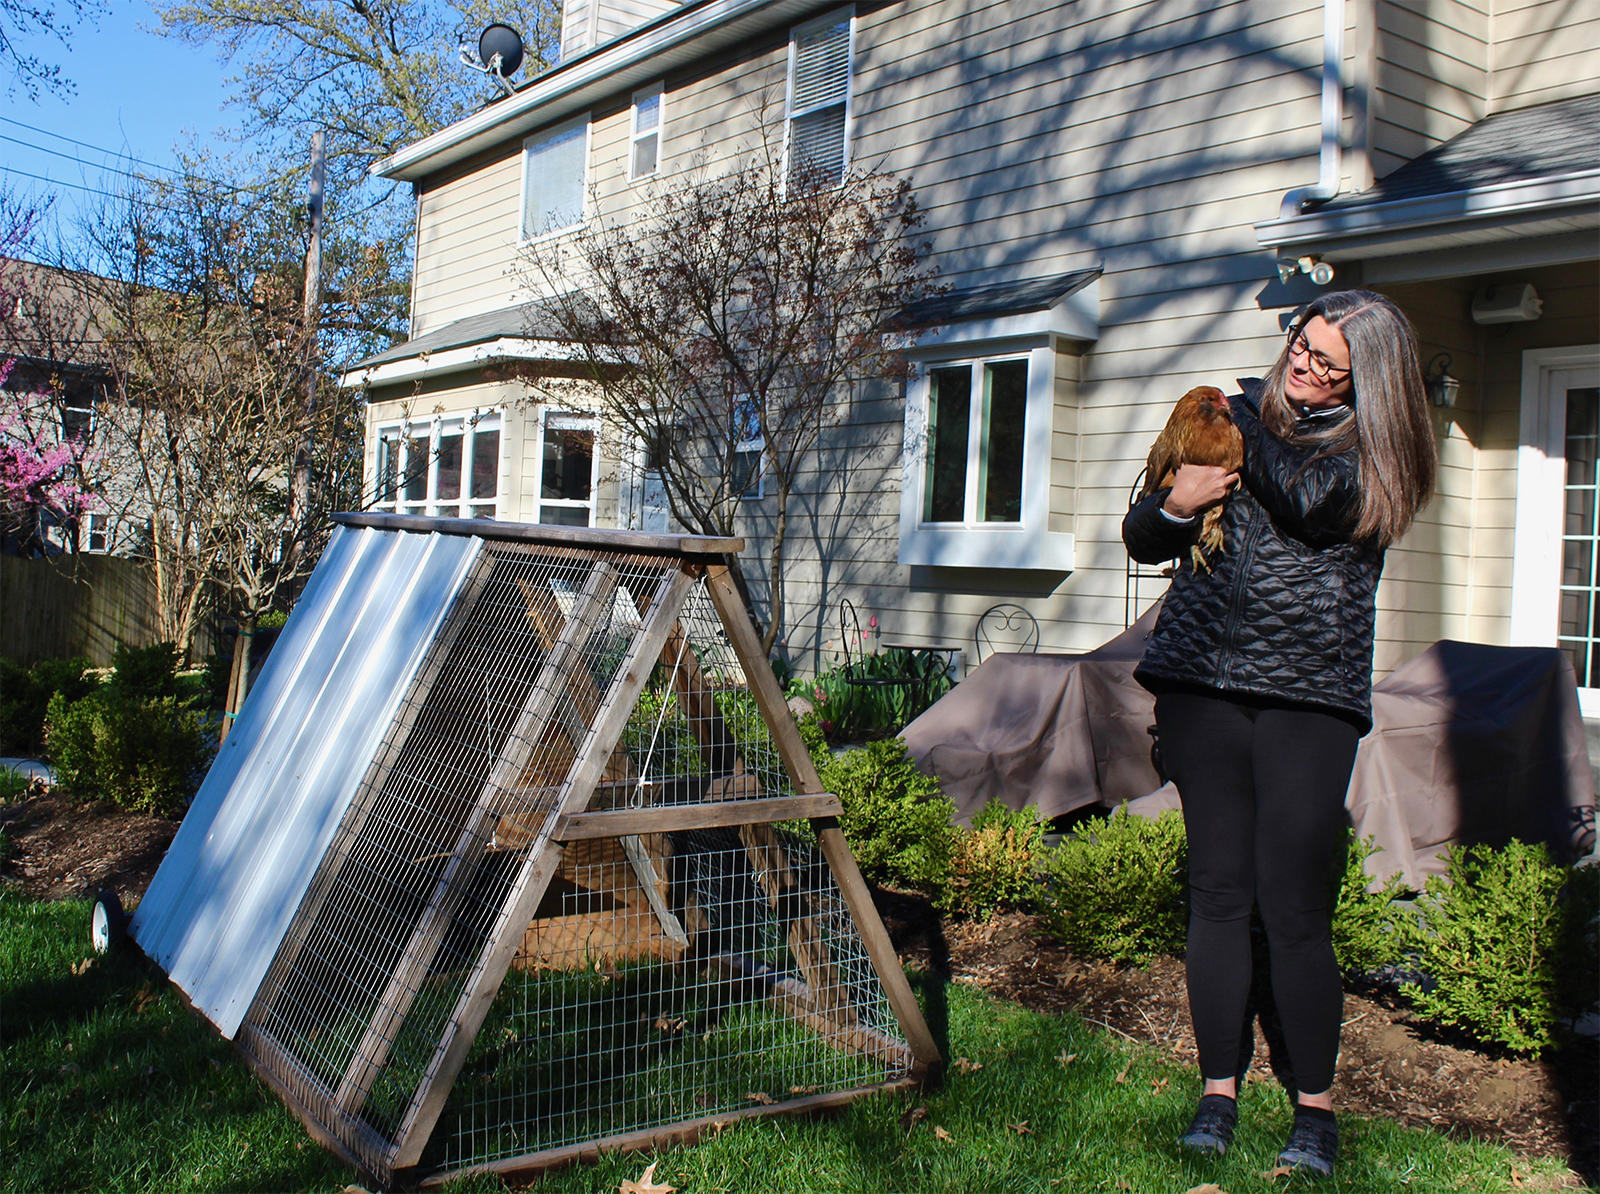 Urban Farming Chickens Rule The Roost In Many St Louis Backyards